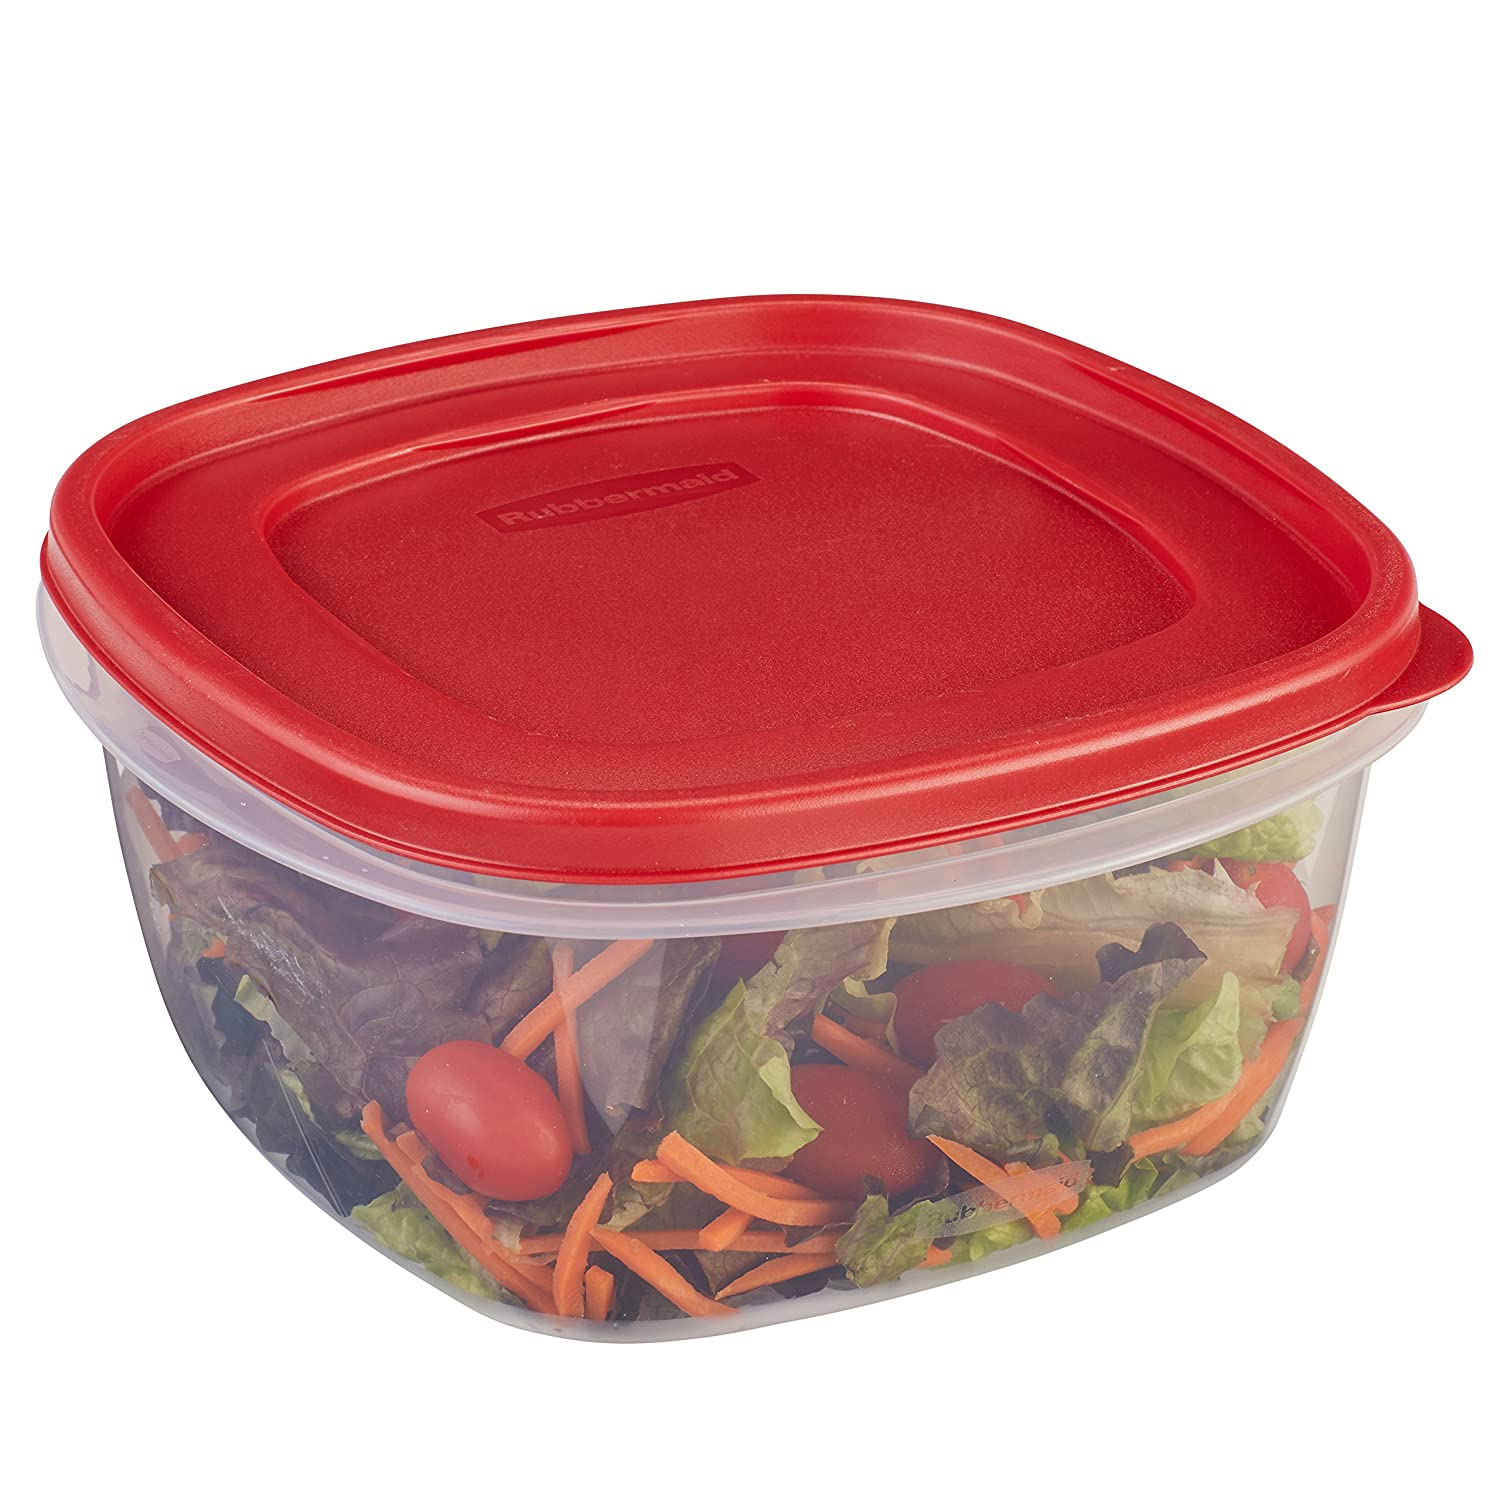 Rubbermaid 7J72 Easy Find Lid Square 14-Cup Food Storage Container Rubbermaid Consumer 1777161